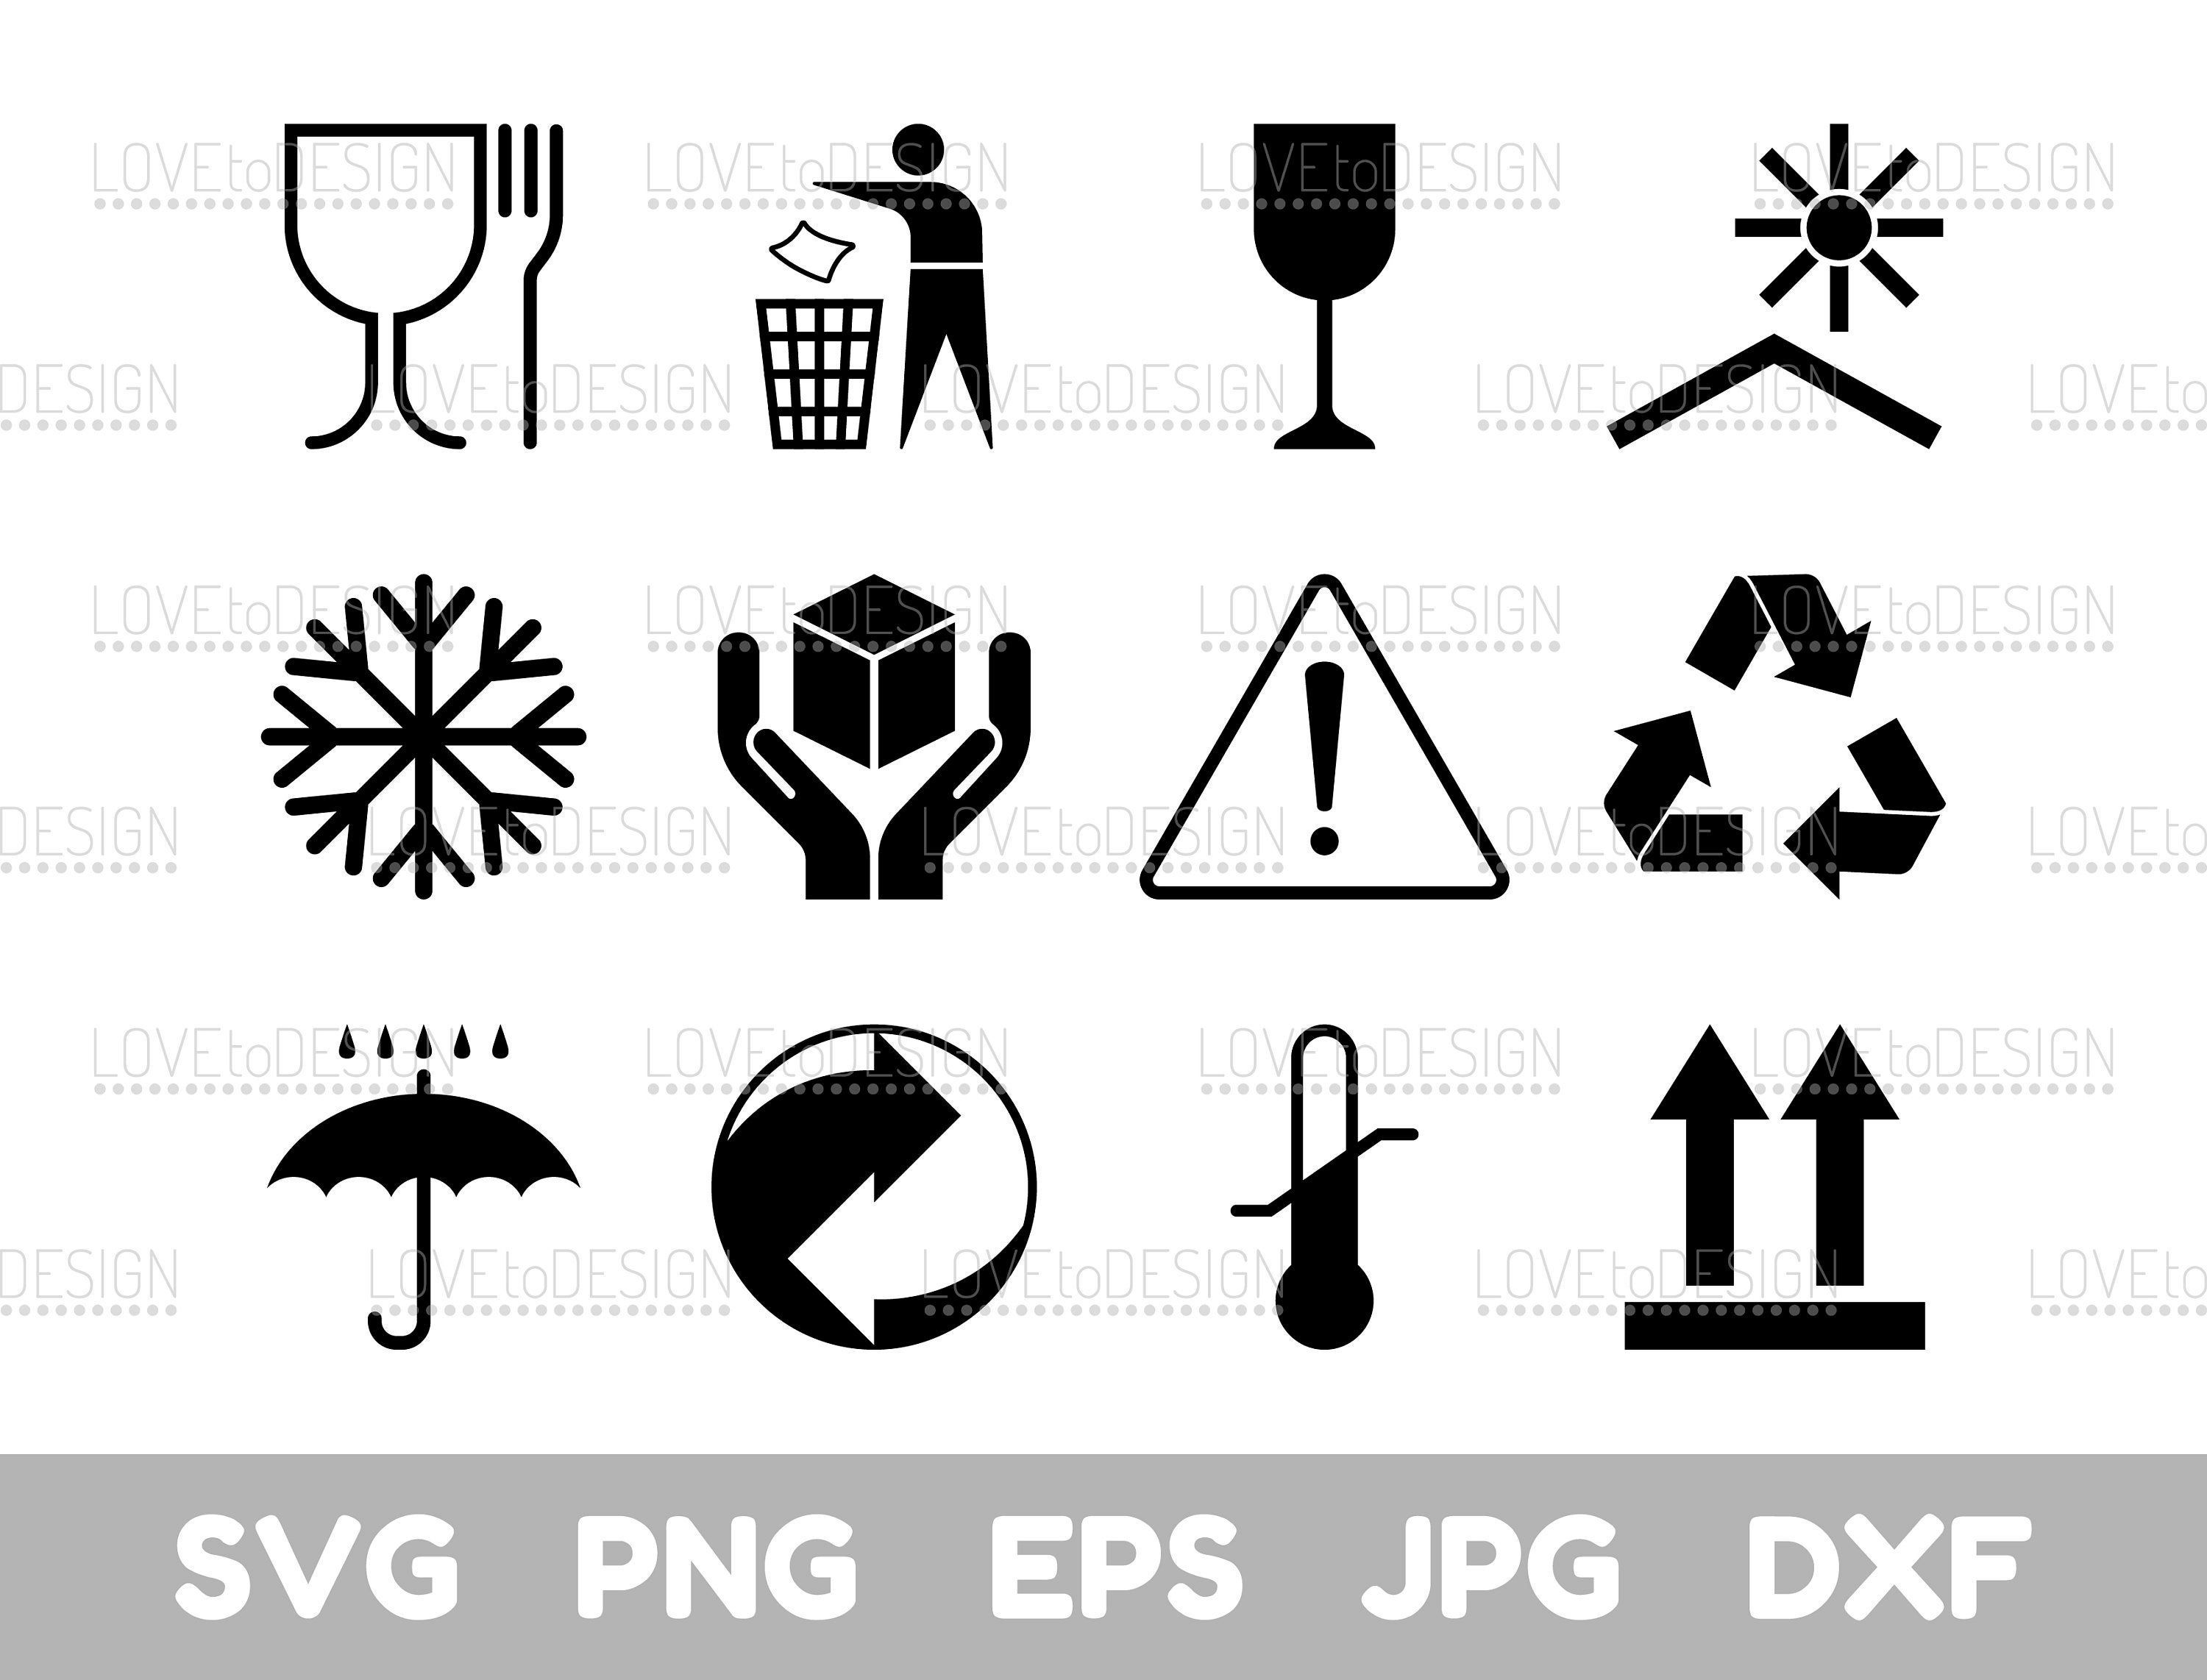 Post Symbols, Post Symbols Svg, Packaging Symbols Svg